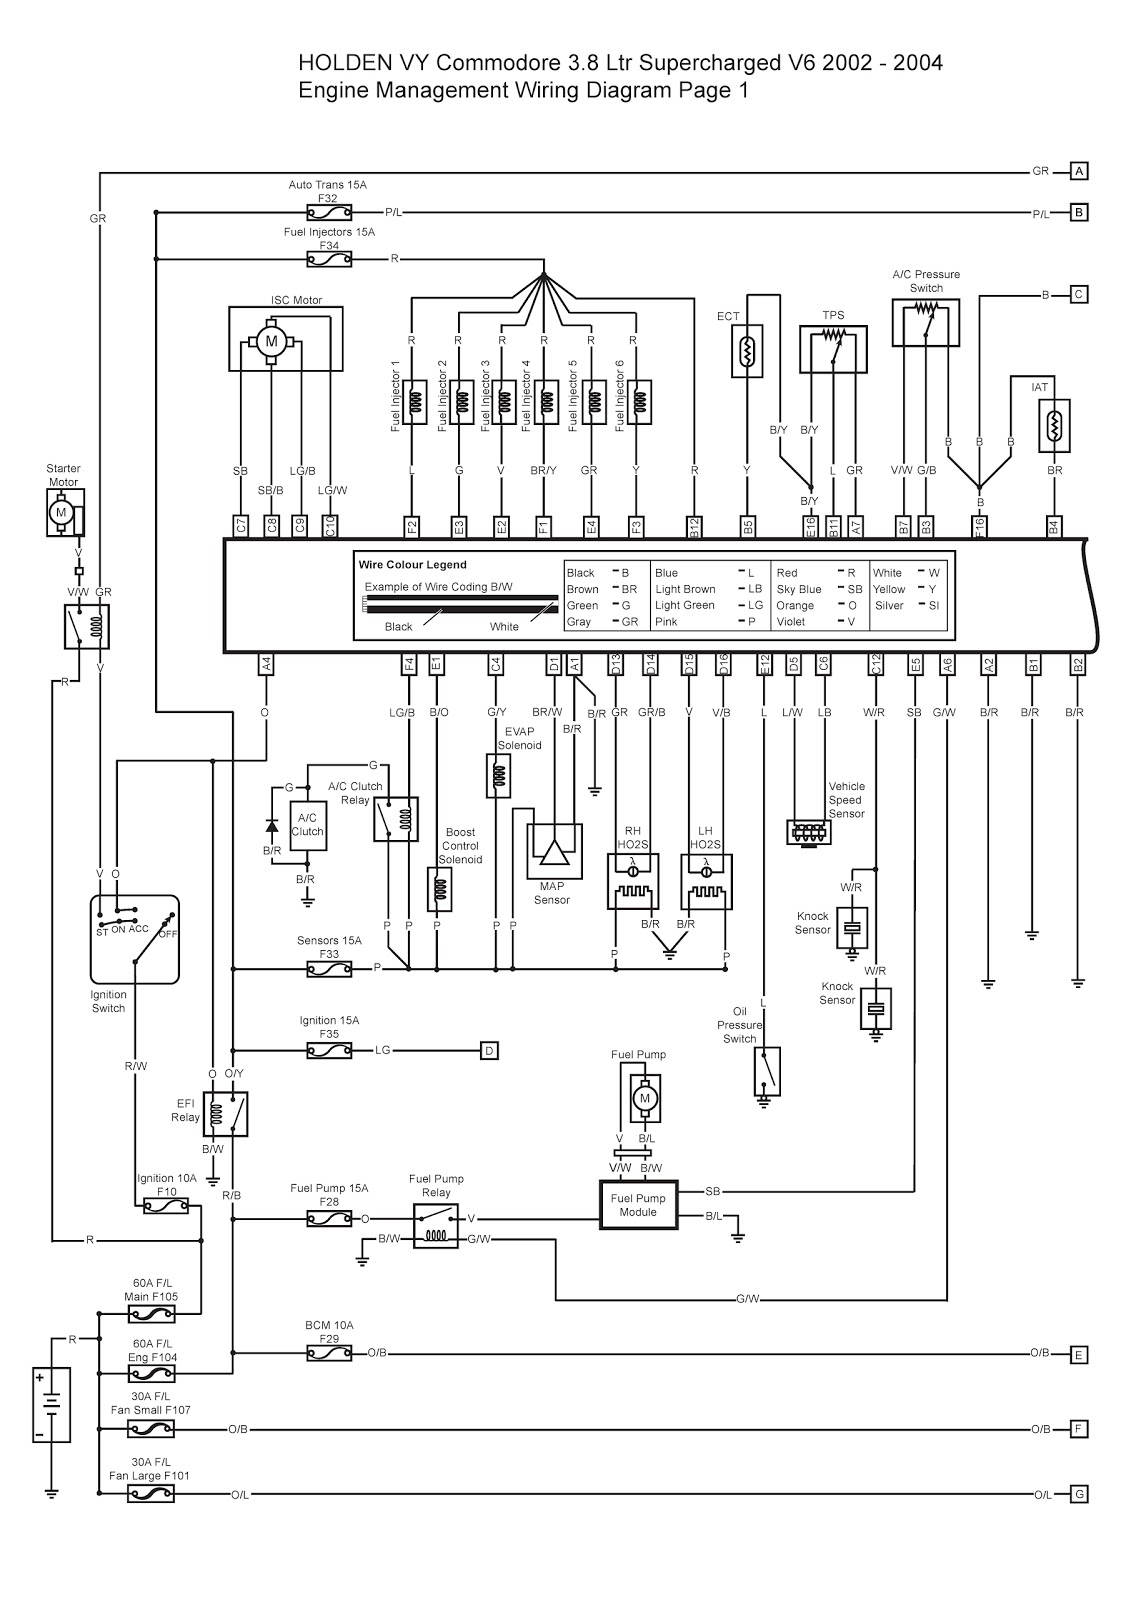 Stereo Wiring Diagram Vy Commodore | Best Wiring Library - Vy Commodore Trailer Wiring Diagram